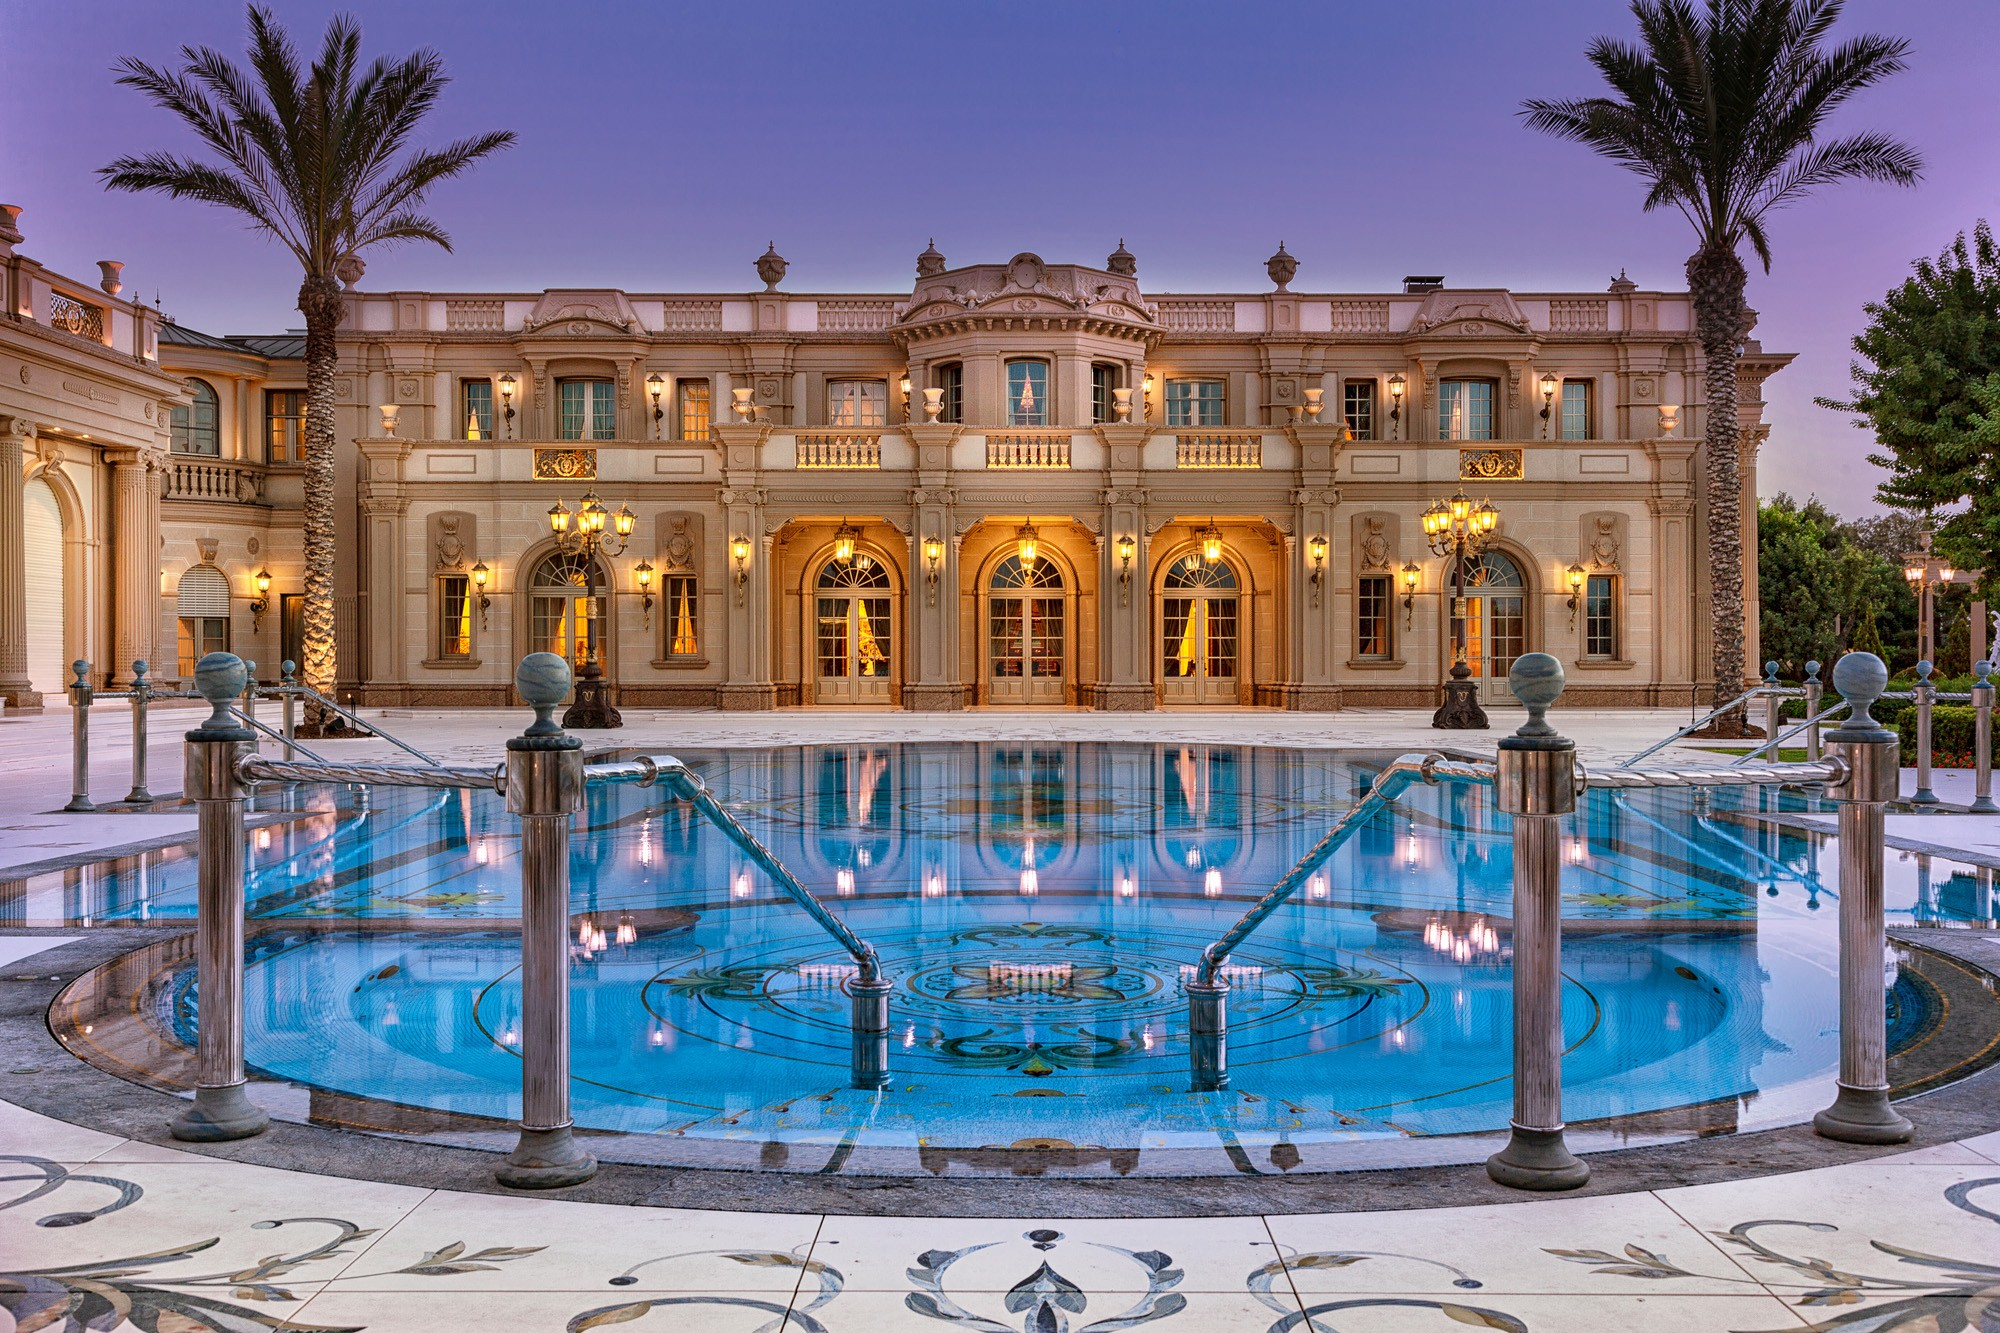 The best modern mansions in the world: the top 10 richest estates with classy architecture and fancy amenities